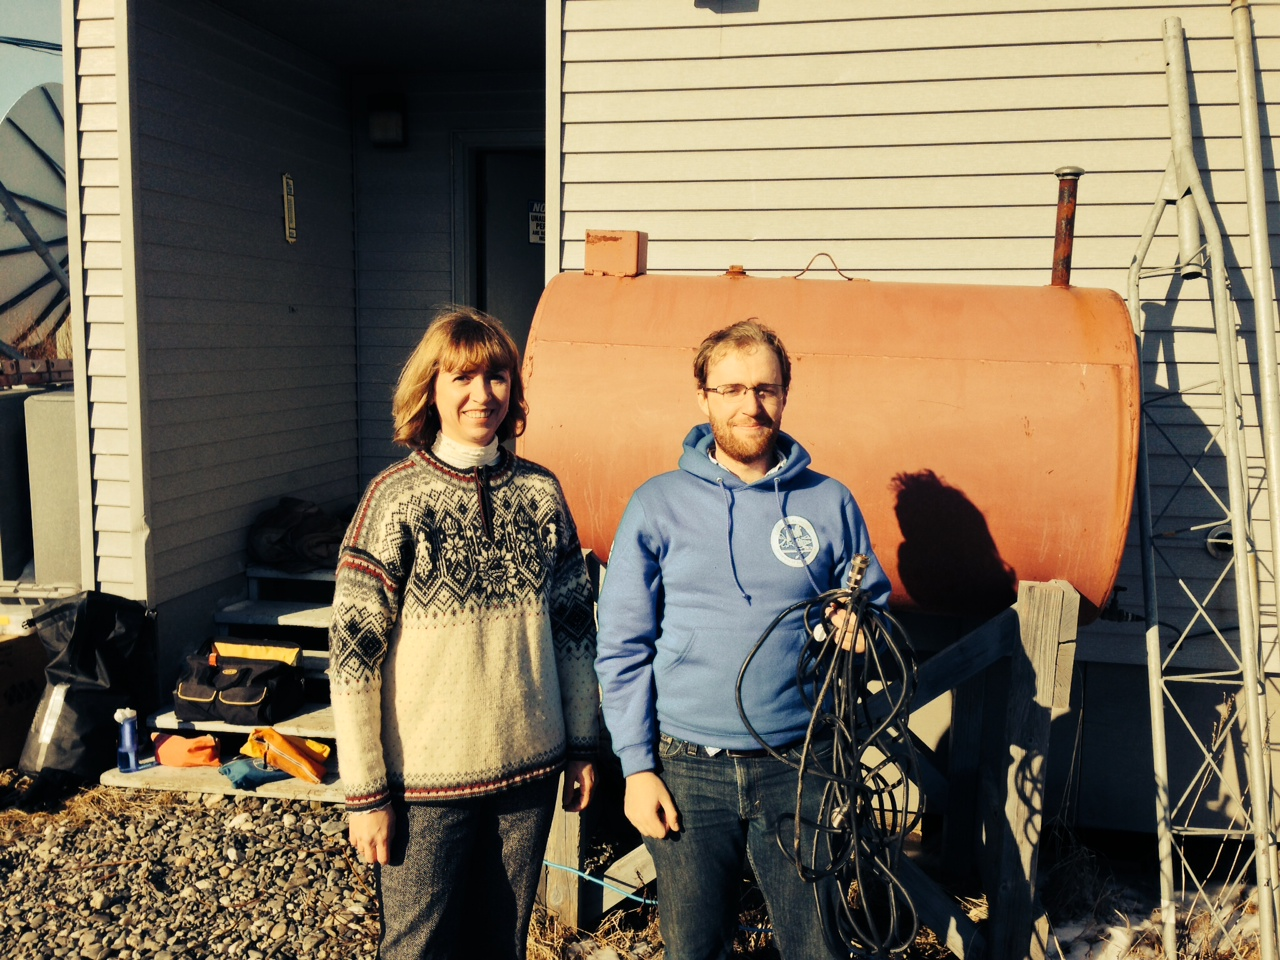 Natalia Ruppert and Christopher Bruton of the Alaska Earthquake Center in Kotzebue, where they traveled in response to recent earthquakes greater than magnitude 5 that occurred near the village of Noatak. (Photo courtesy of Natalia Ruppert)